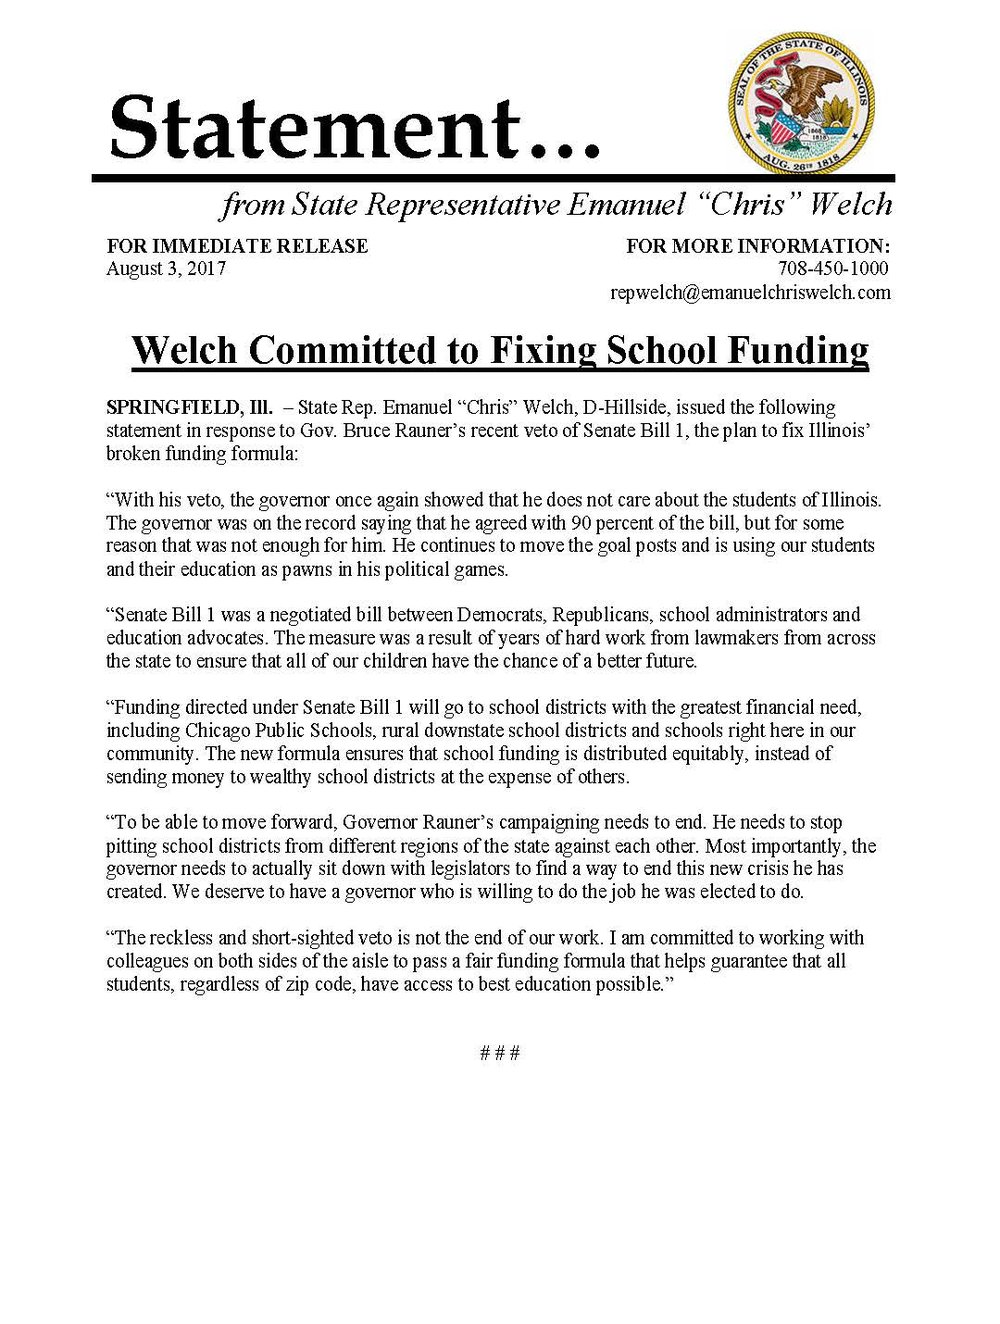 Welch Committed to Fixing School Funding  (August 3, 2017)